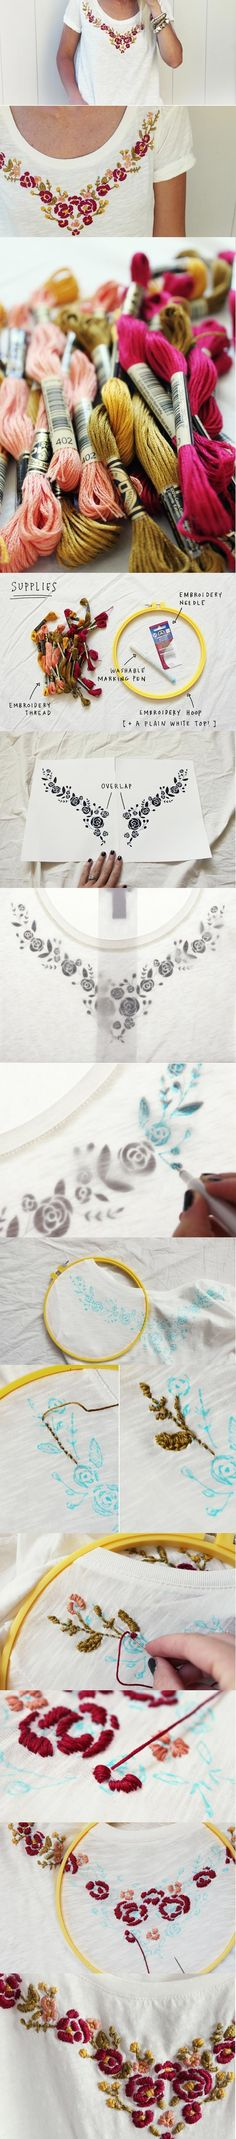 DIY: Hand Embroidered T-shirt - inspiring picture on Joyzz.com